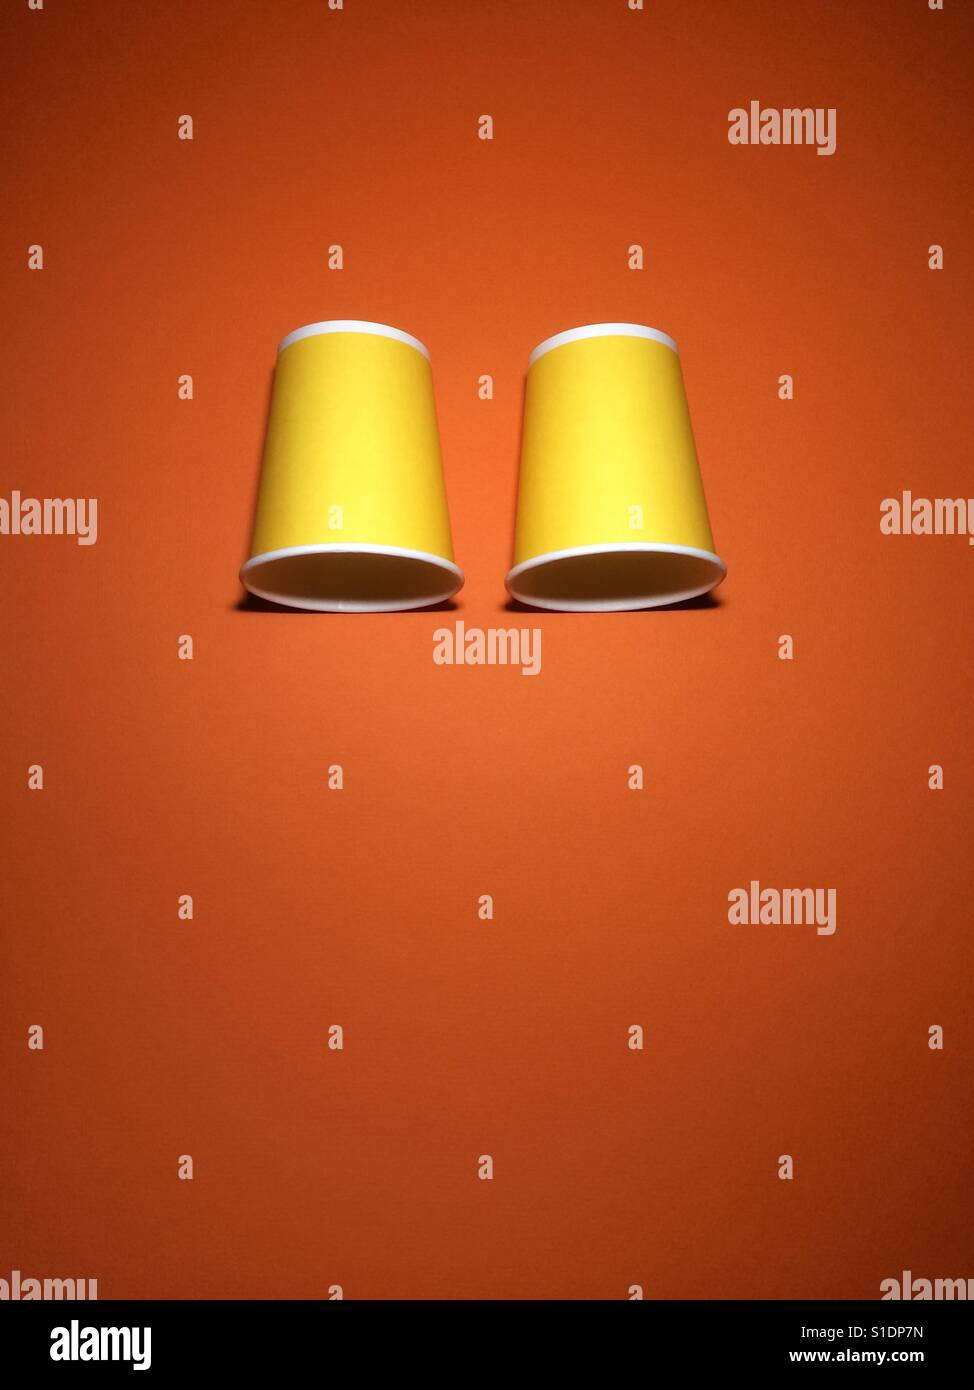 Two yellow disposable cups on orange textured paper background with copy space. - Stock Image